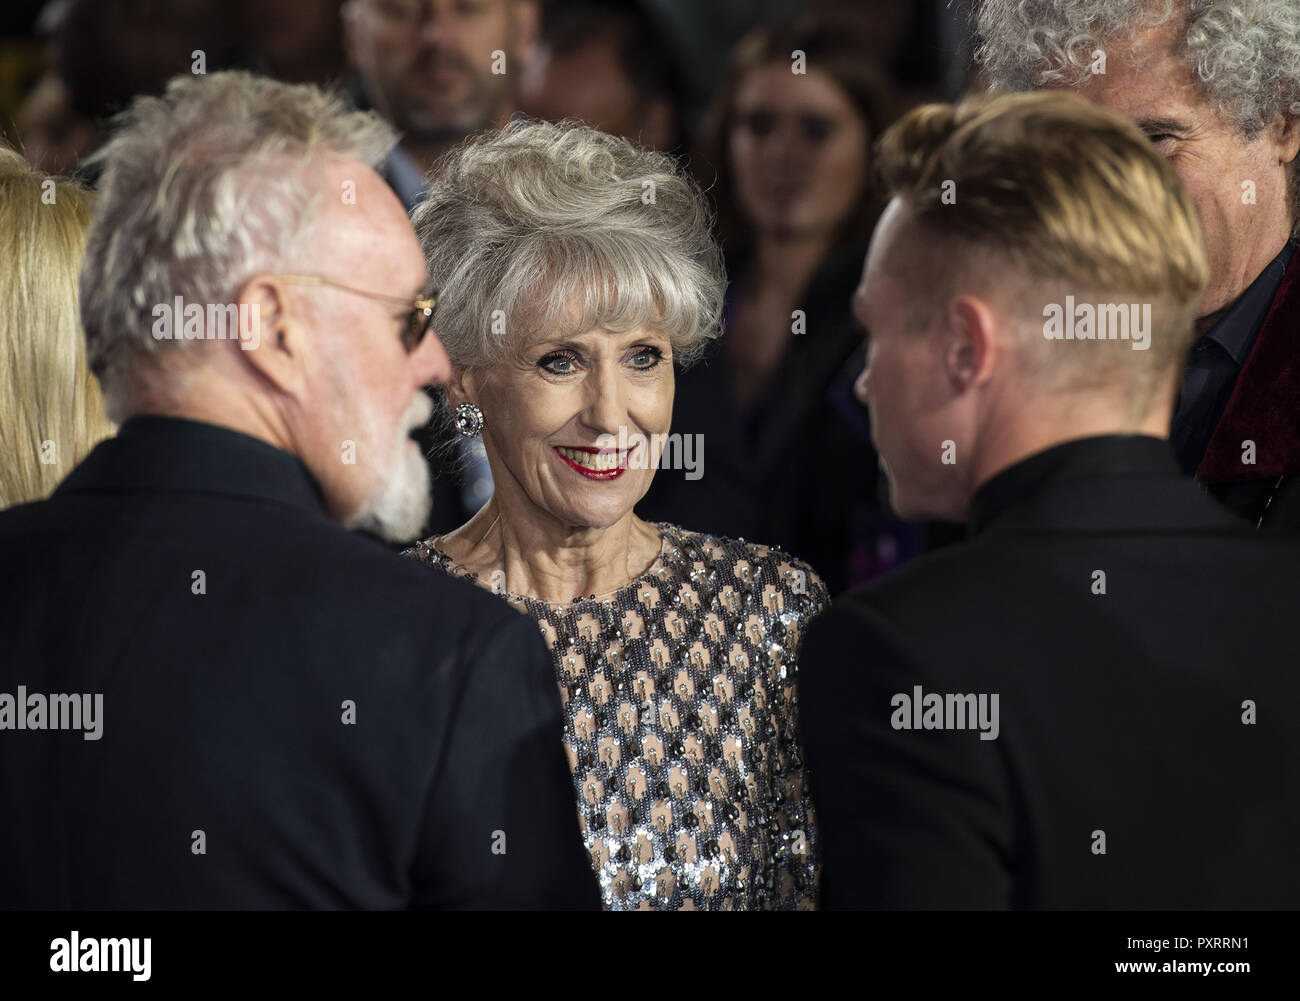 London, UK. 23rd Oct, 2018. Anita Dobson attends the World Premiere of 'Bohemian Rhapsody' at SSE Arena Wembley. Credit: Gary Mitchell/SOPA Images/ZUMA Wire/Alamy Live News Stock Photo